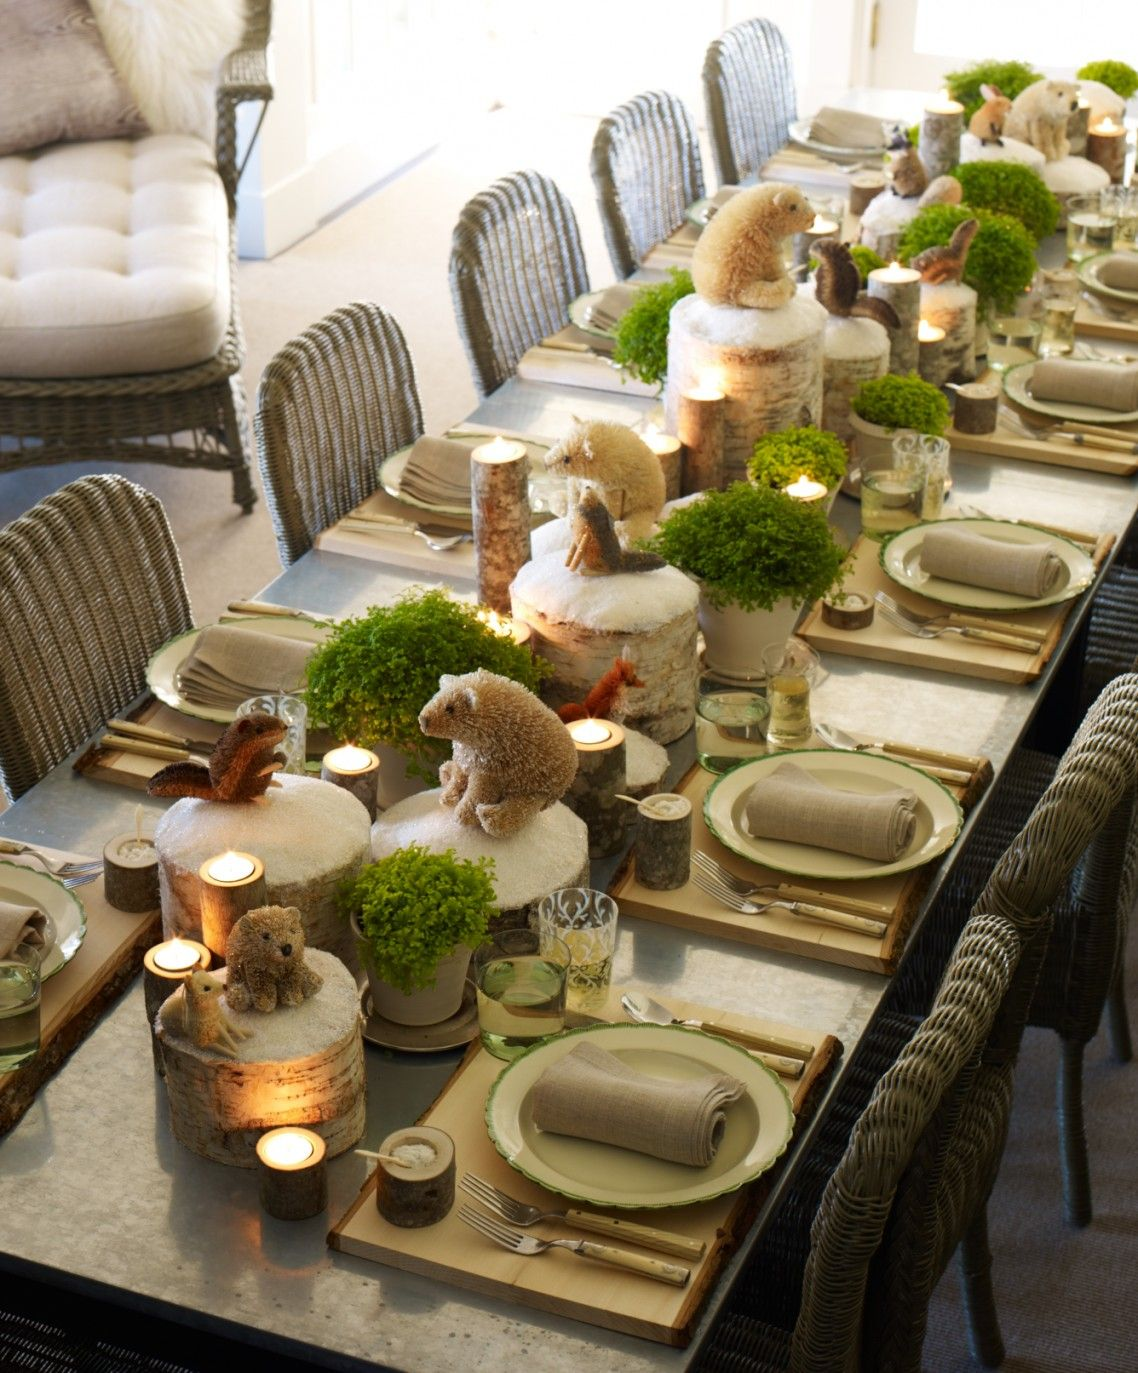 Awesome Decorating Ideas For Christmas Table Settings Designed By Green Fresh Plant On Christmas Table Decorations Christmas Table Settings Woodland Christmas